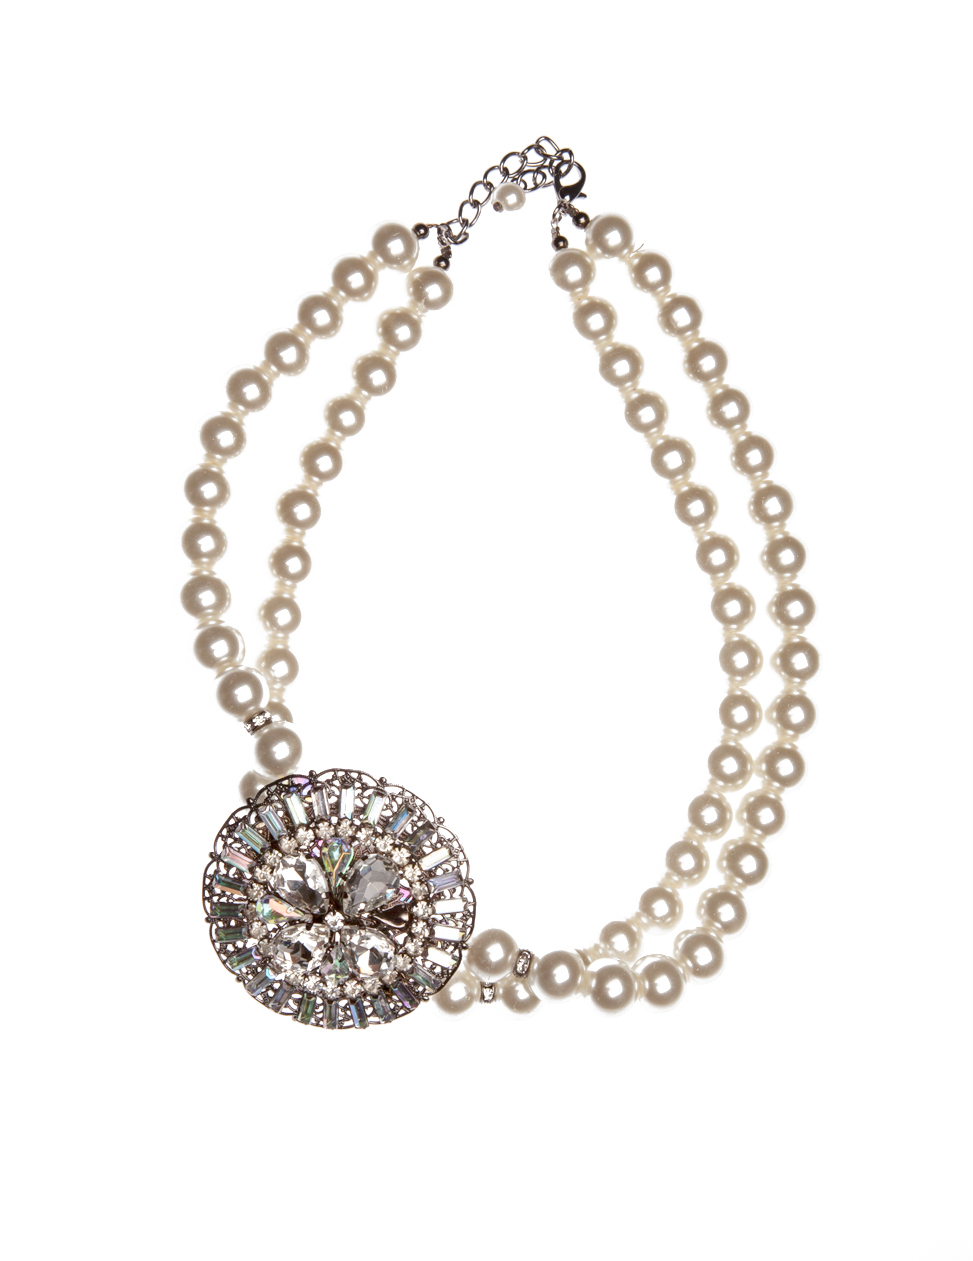 Caitrin Pearl Necklace - predominant colour: ivory/cream; occasions: occasion; length: short; size: large/oversized; material: chain/metal; finish: metallic; embellishment: pearls; secondary colour: clear; style: bib/statement; season: a/w 2015; wardrobe: event